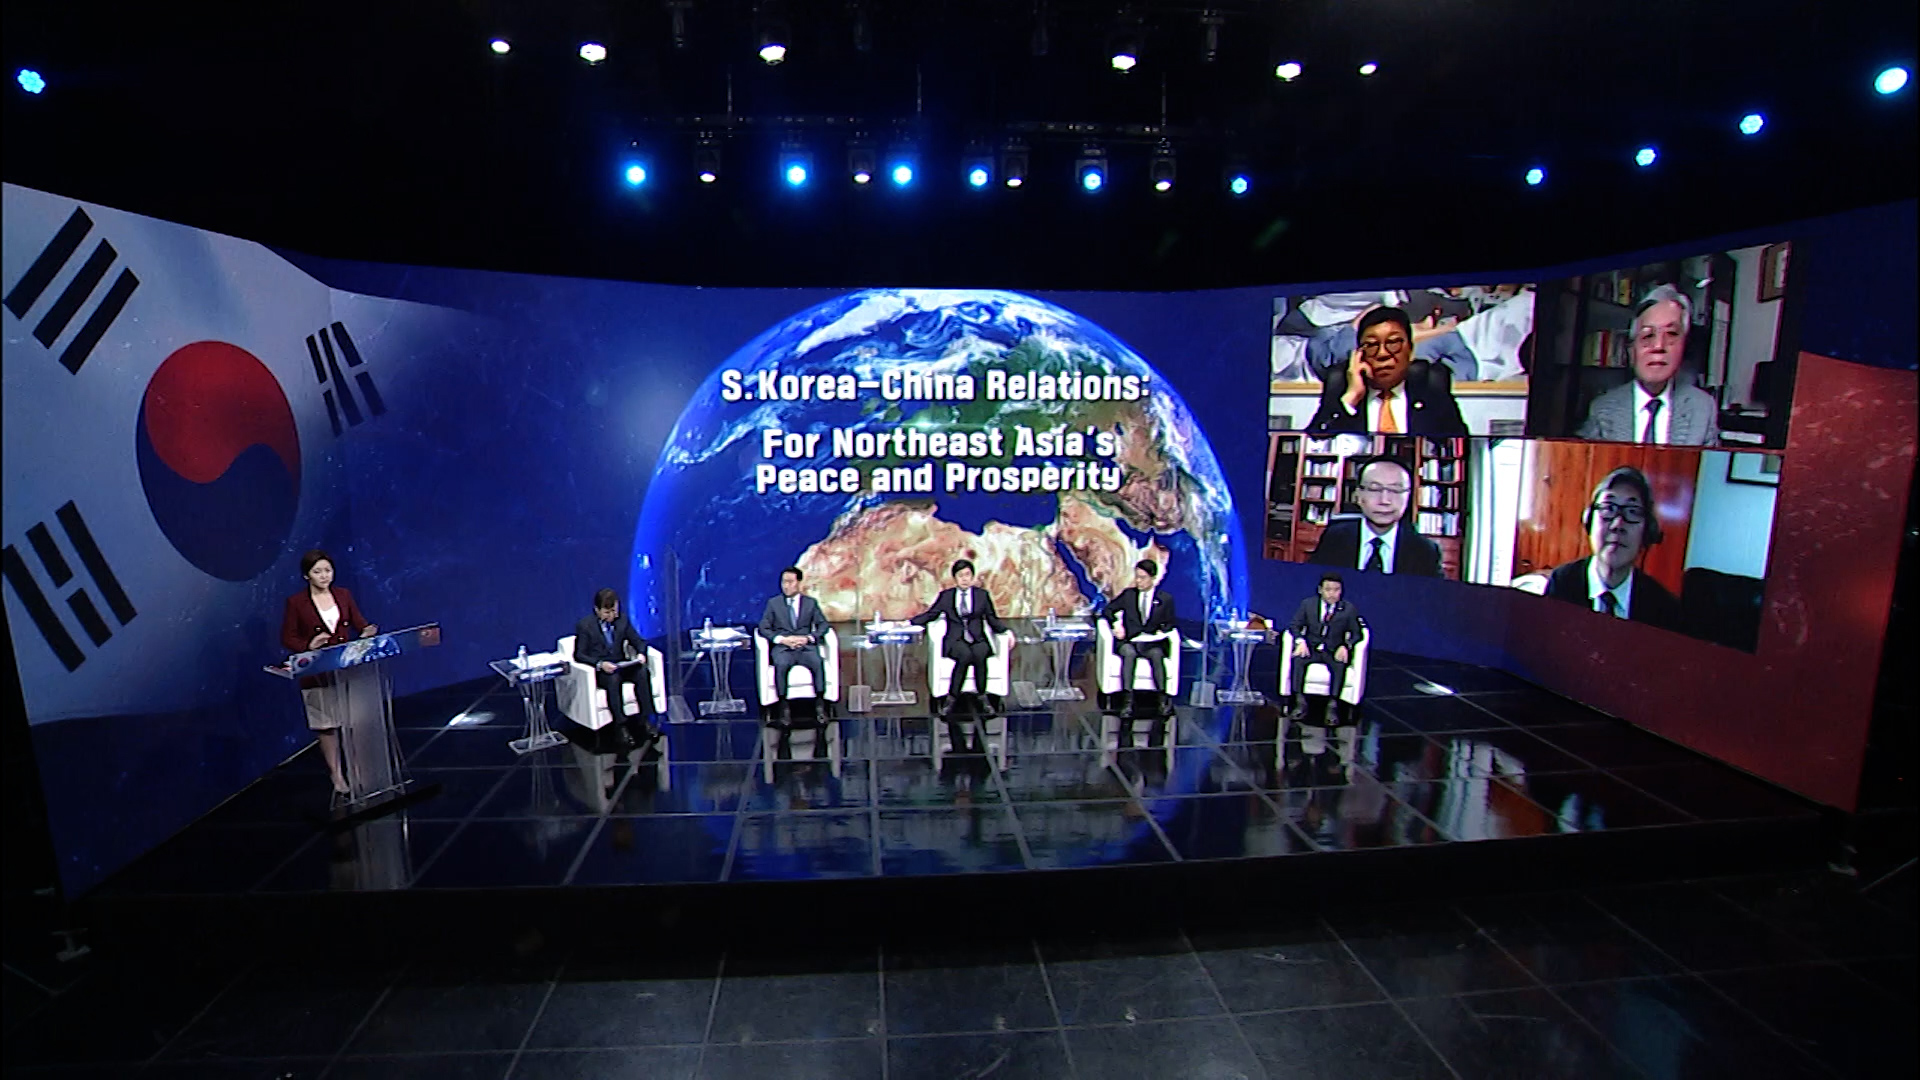 S.Korea-China Relations: For Northeast Asia's Peace and Prosperity